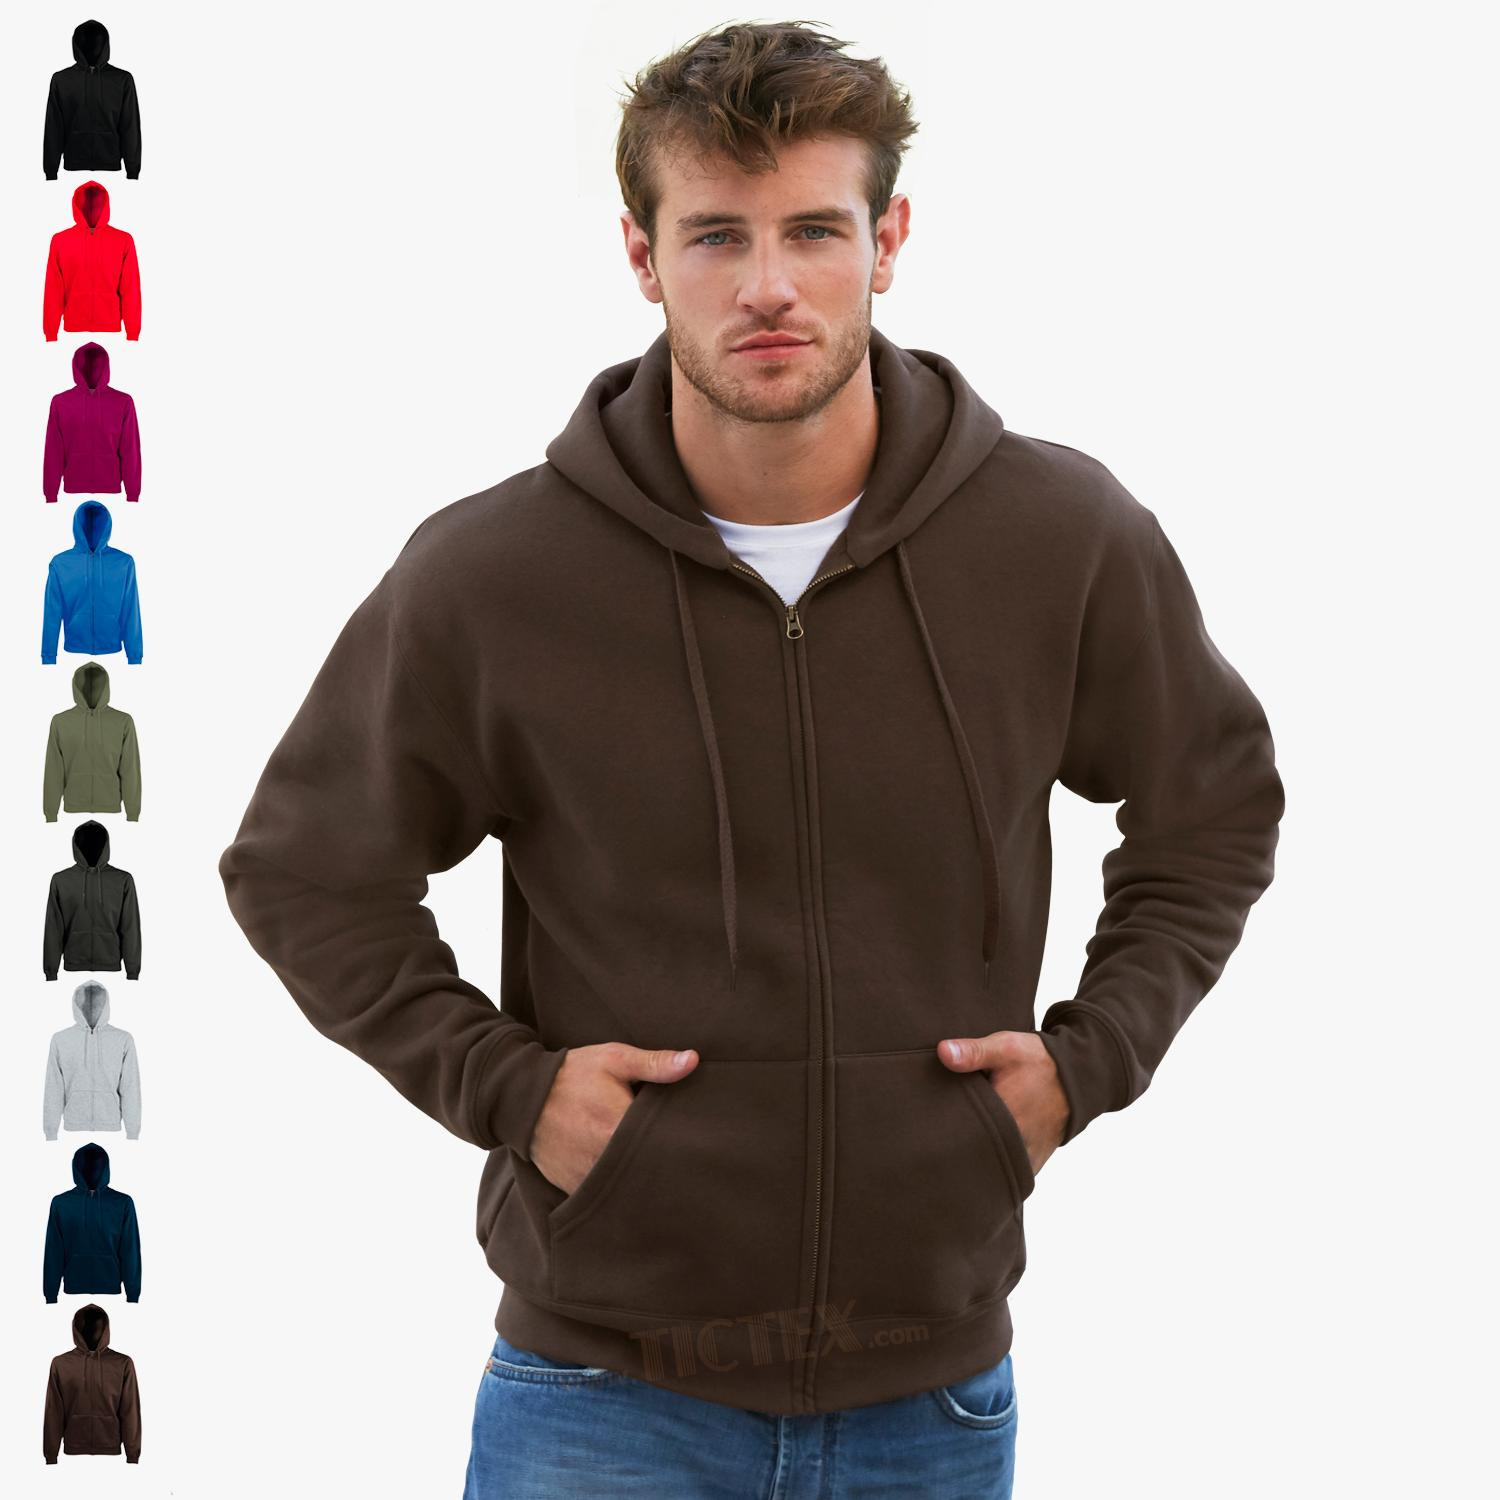 Fruit of the Loom - Premium Kapuzen-Sweatjacke 'Hooded